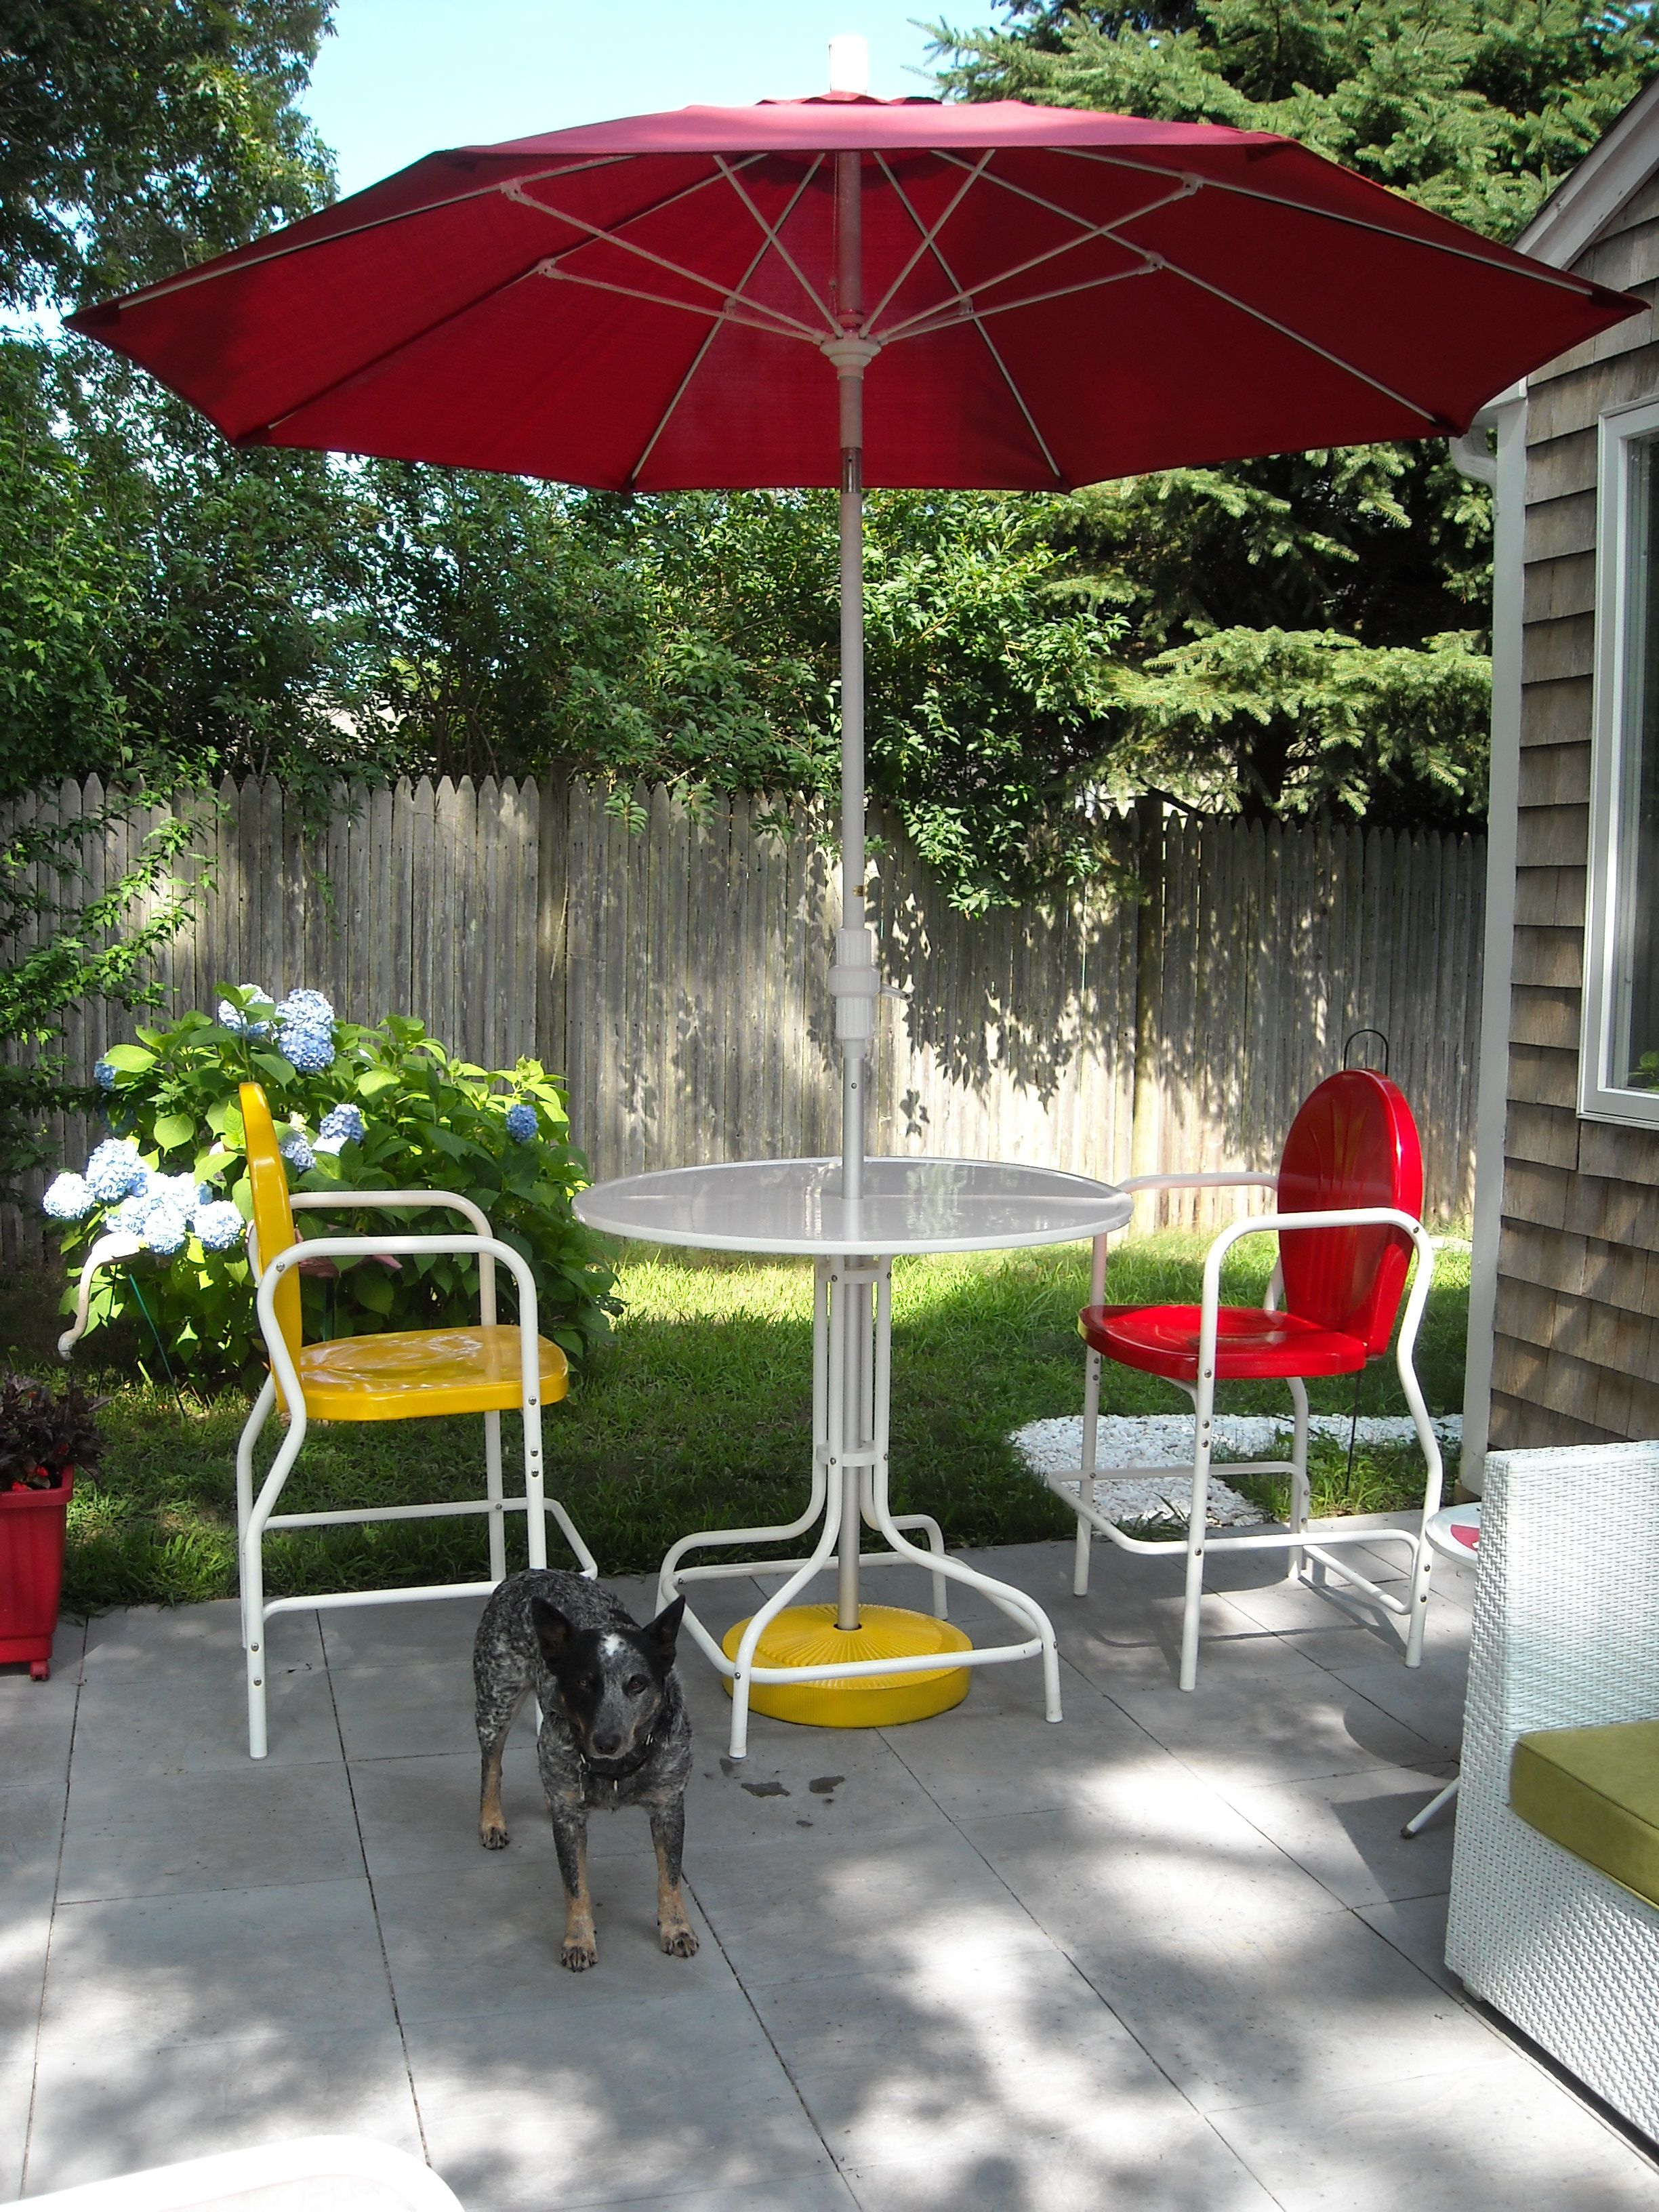 Torrans Manufacturing Retro Metal Bar Table And Chairs And Lilly The  Australian Cattle Dog